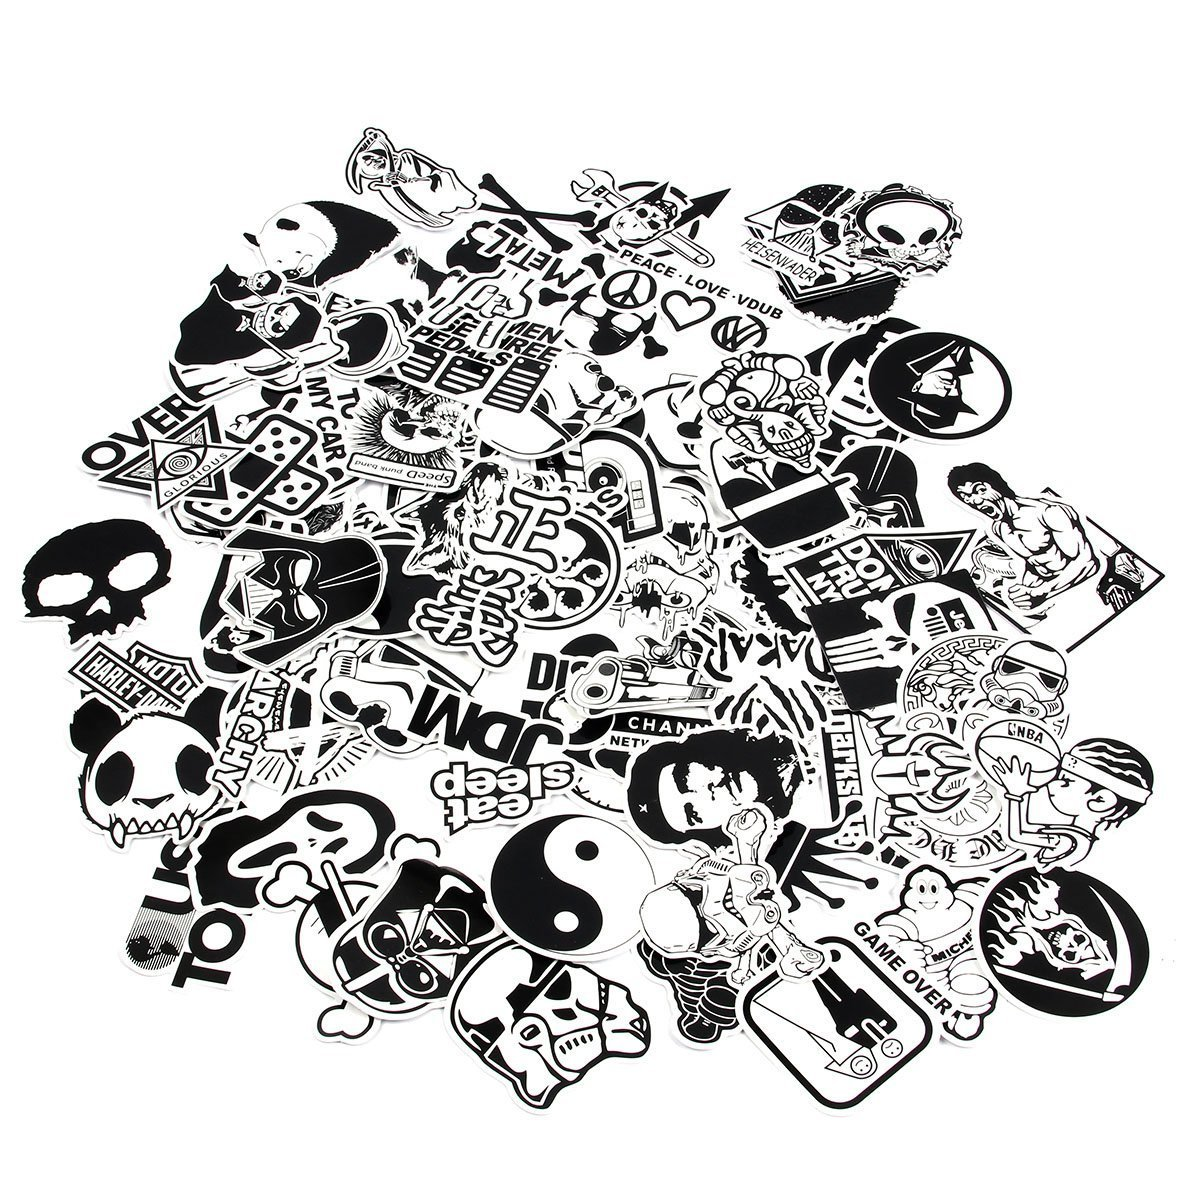 Chnlml laptop stickers black and white 100pcs variety vinyl car sticker motorcycle bicycle luggage decal graffiti patches skateboard cool stickers for